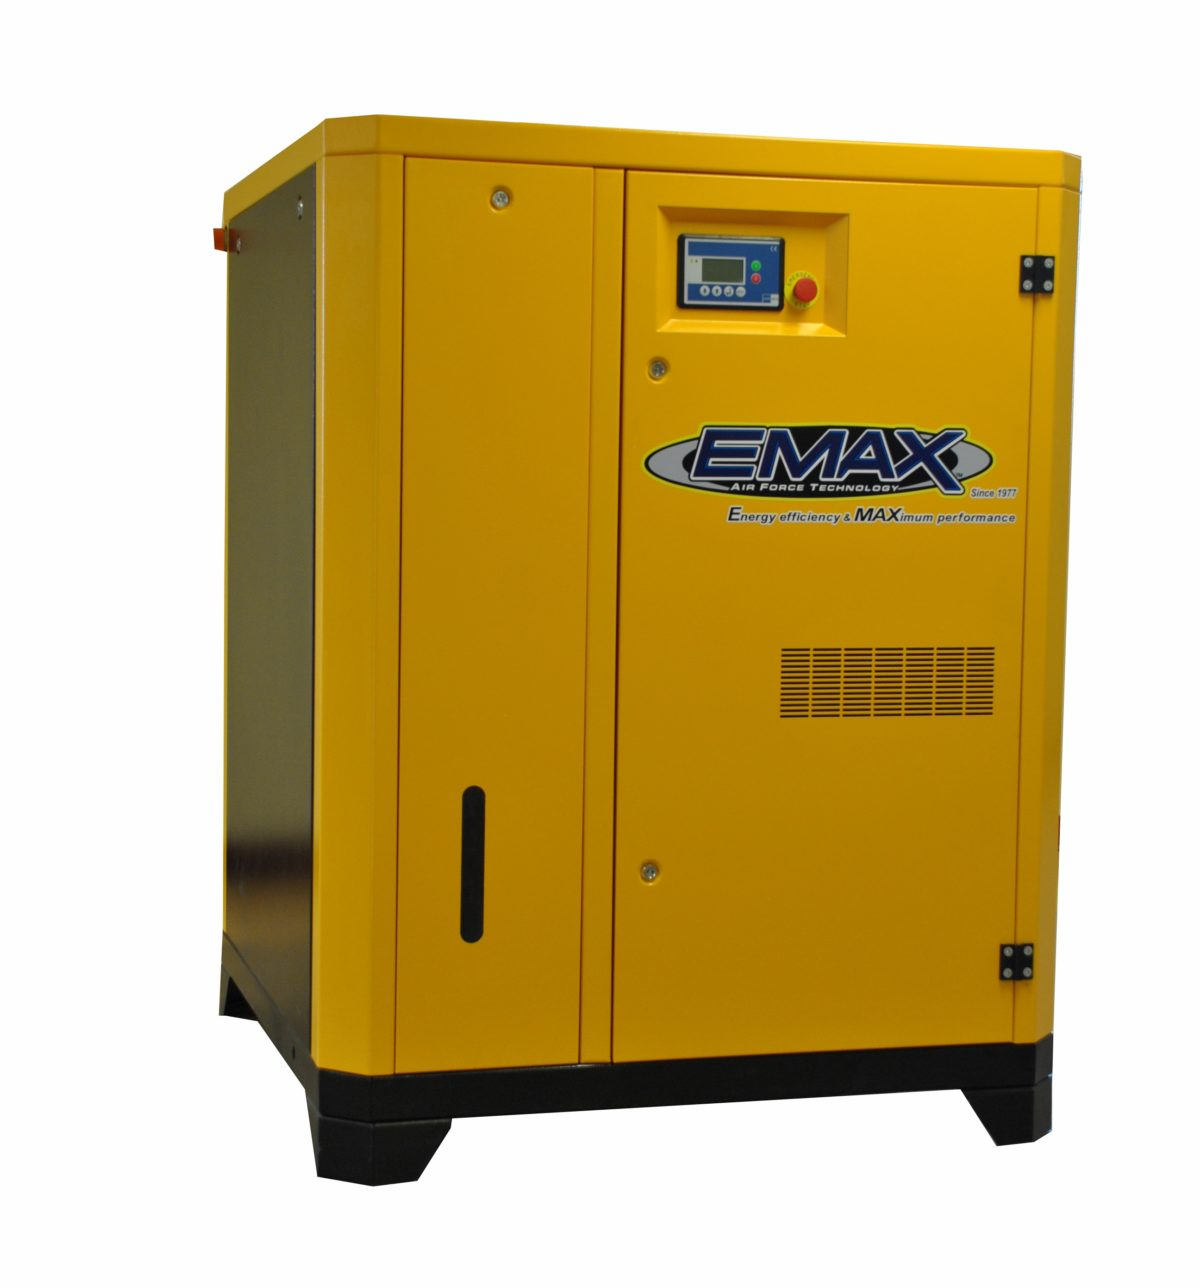 EMAX Industrial Variable Speed 40 HP 3 Phase Rotary Screw Air Compressor